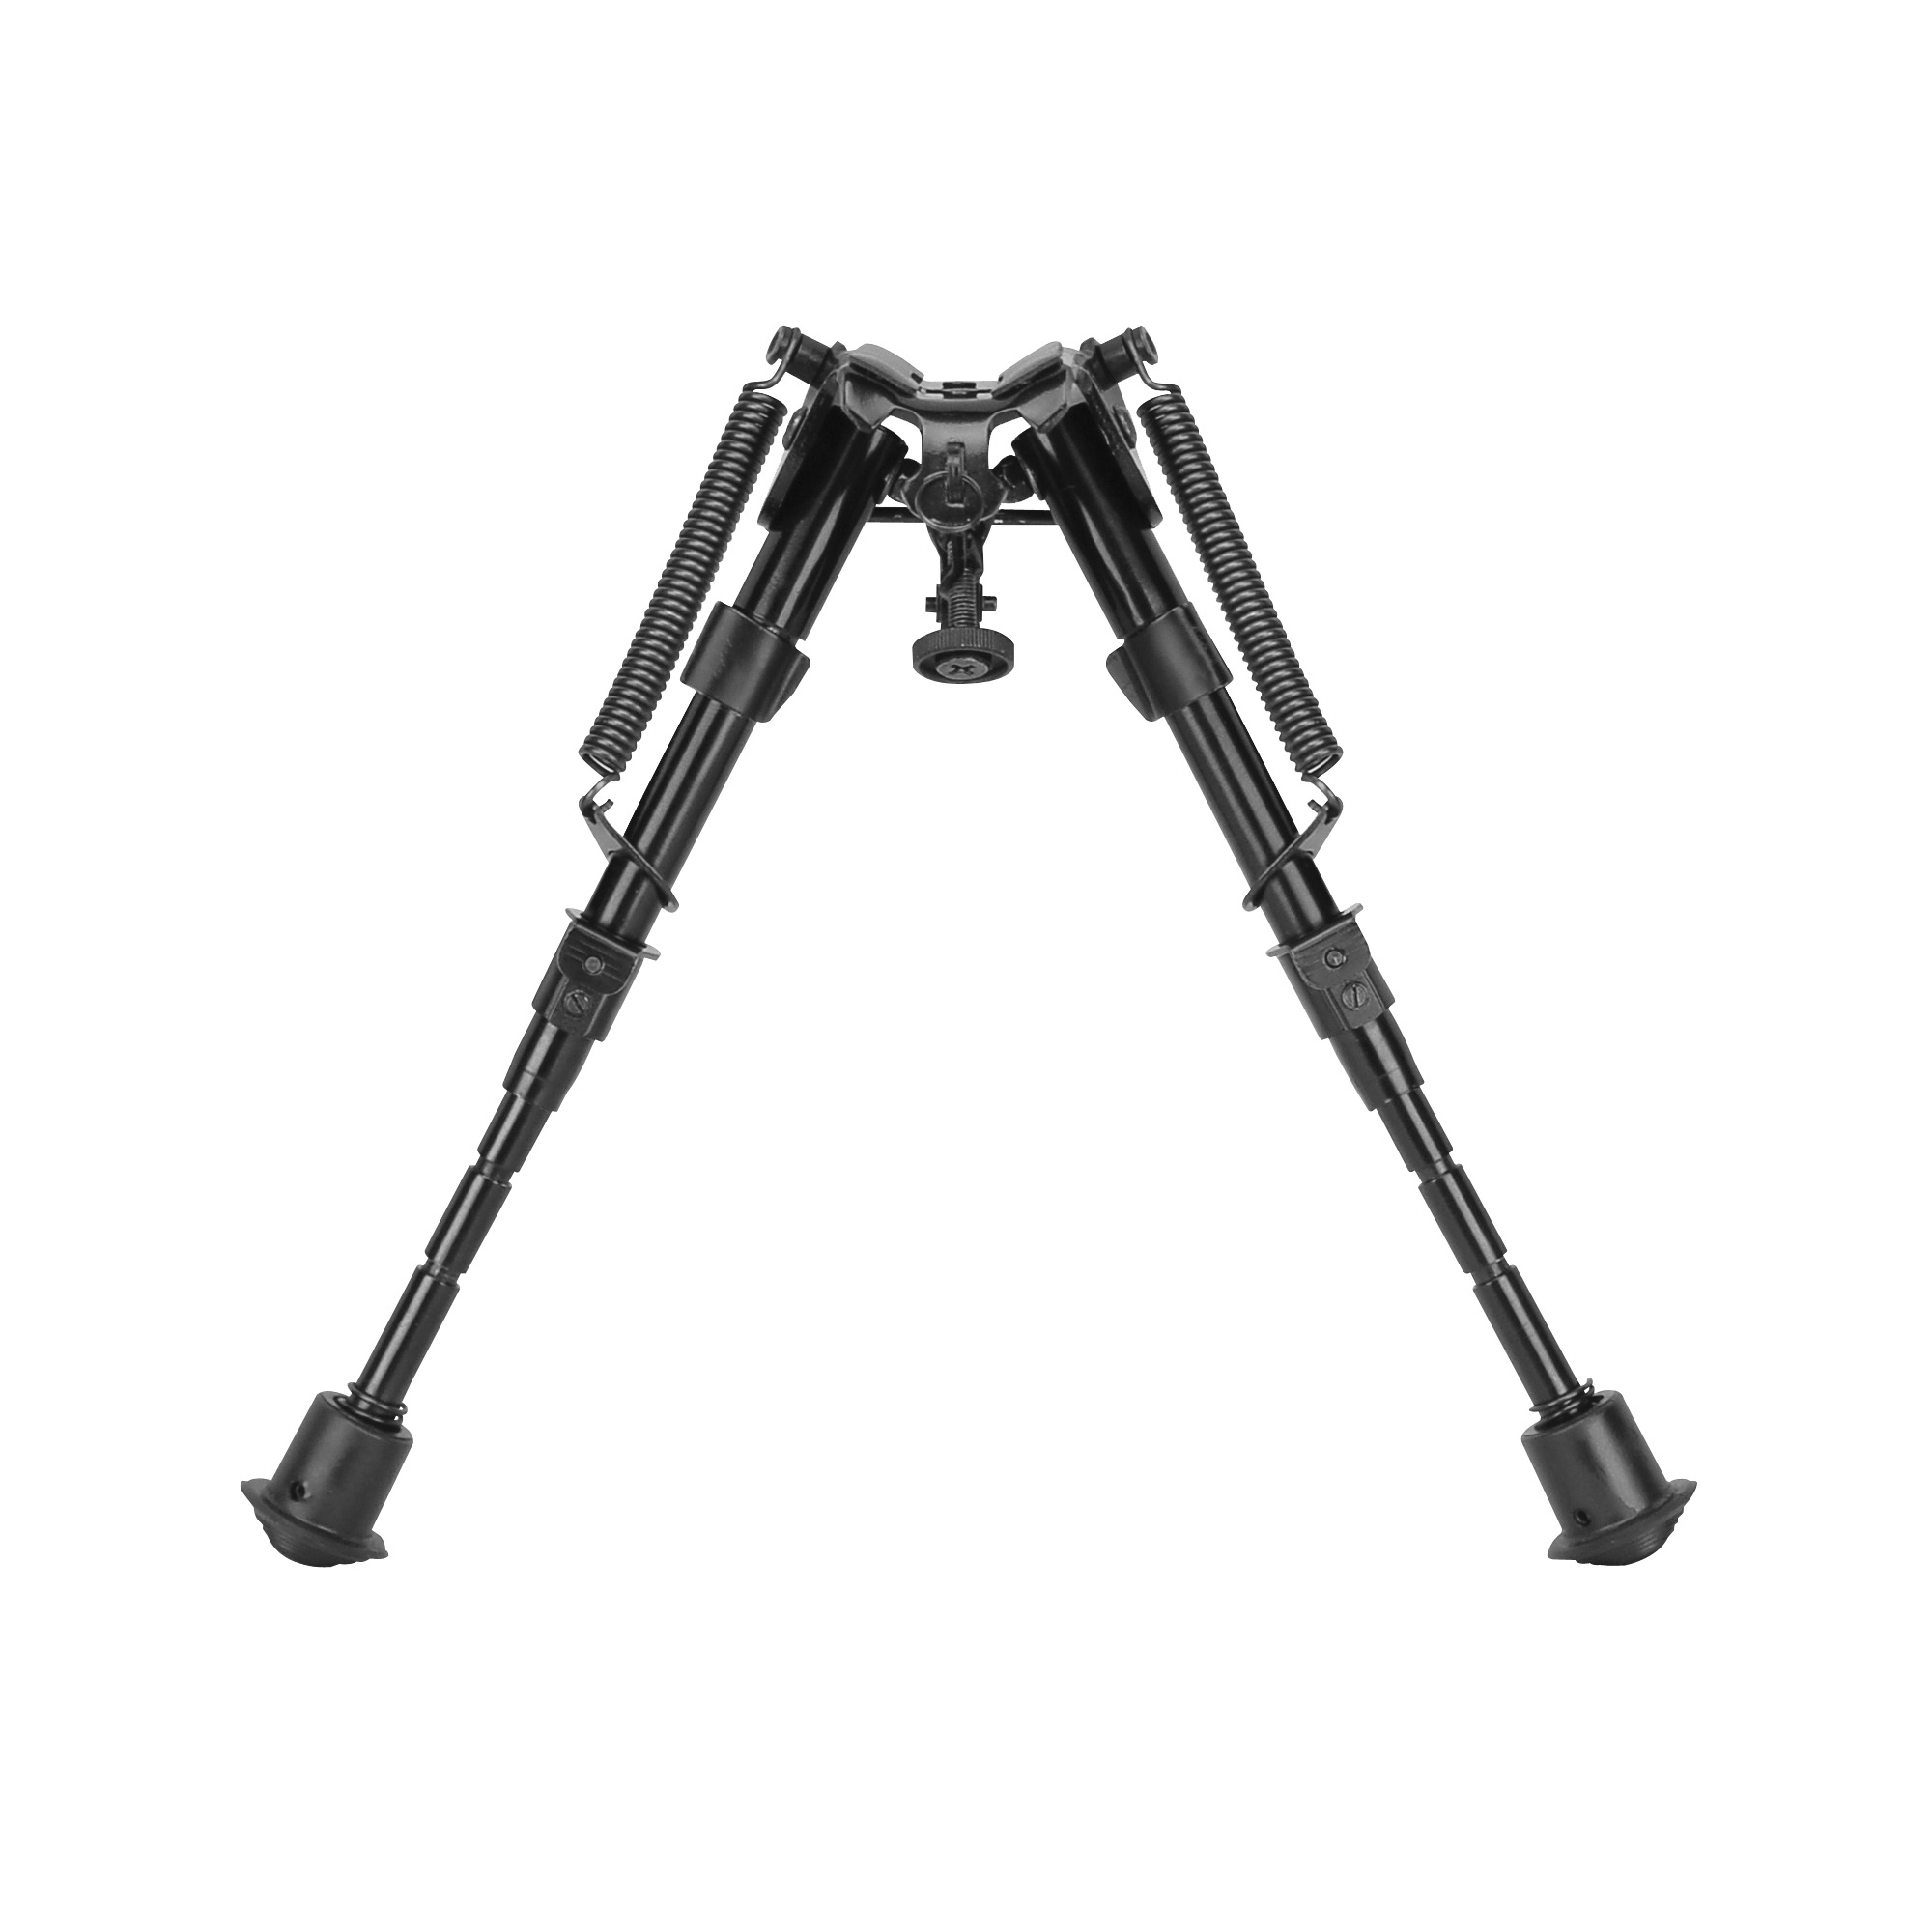 """Caldwell's XLA Fixed Adjustable Bipod 6""""-9"""" provides a stable shooting support that conveniently attaches to almost any firearm with a sling swivel stud. The lightweight aluminum design adds minimal weight and deploys quickly"""" with legs that instantly spring out to the shooting position with the touch of a button. The legs are notched for easy indexing to a specific height. There is a connection point for sling attachment and multi section legs that collapses forward allowing for convenient carry of the firearm. Soft rubber feet provide enhanced stability"""" while the padded bipod base protects the firearms forend."""